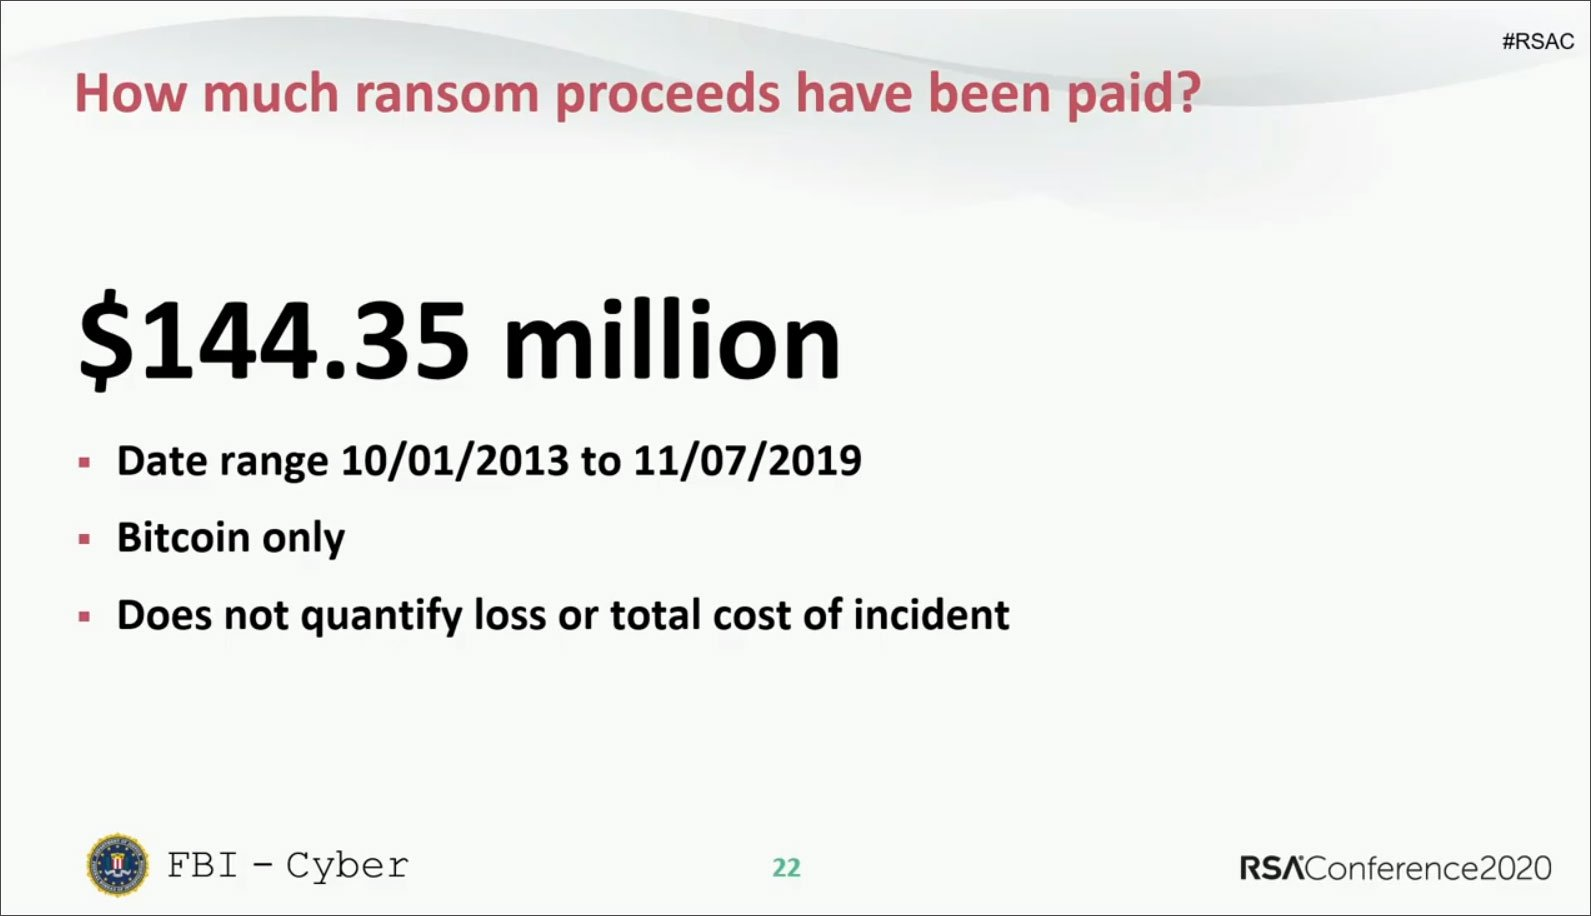 FBI claims ransomwares have received at least $140 million ransom from victims